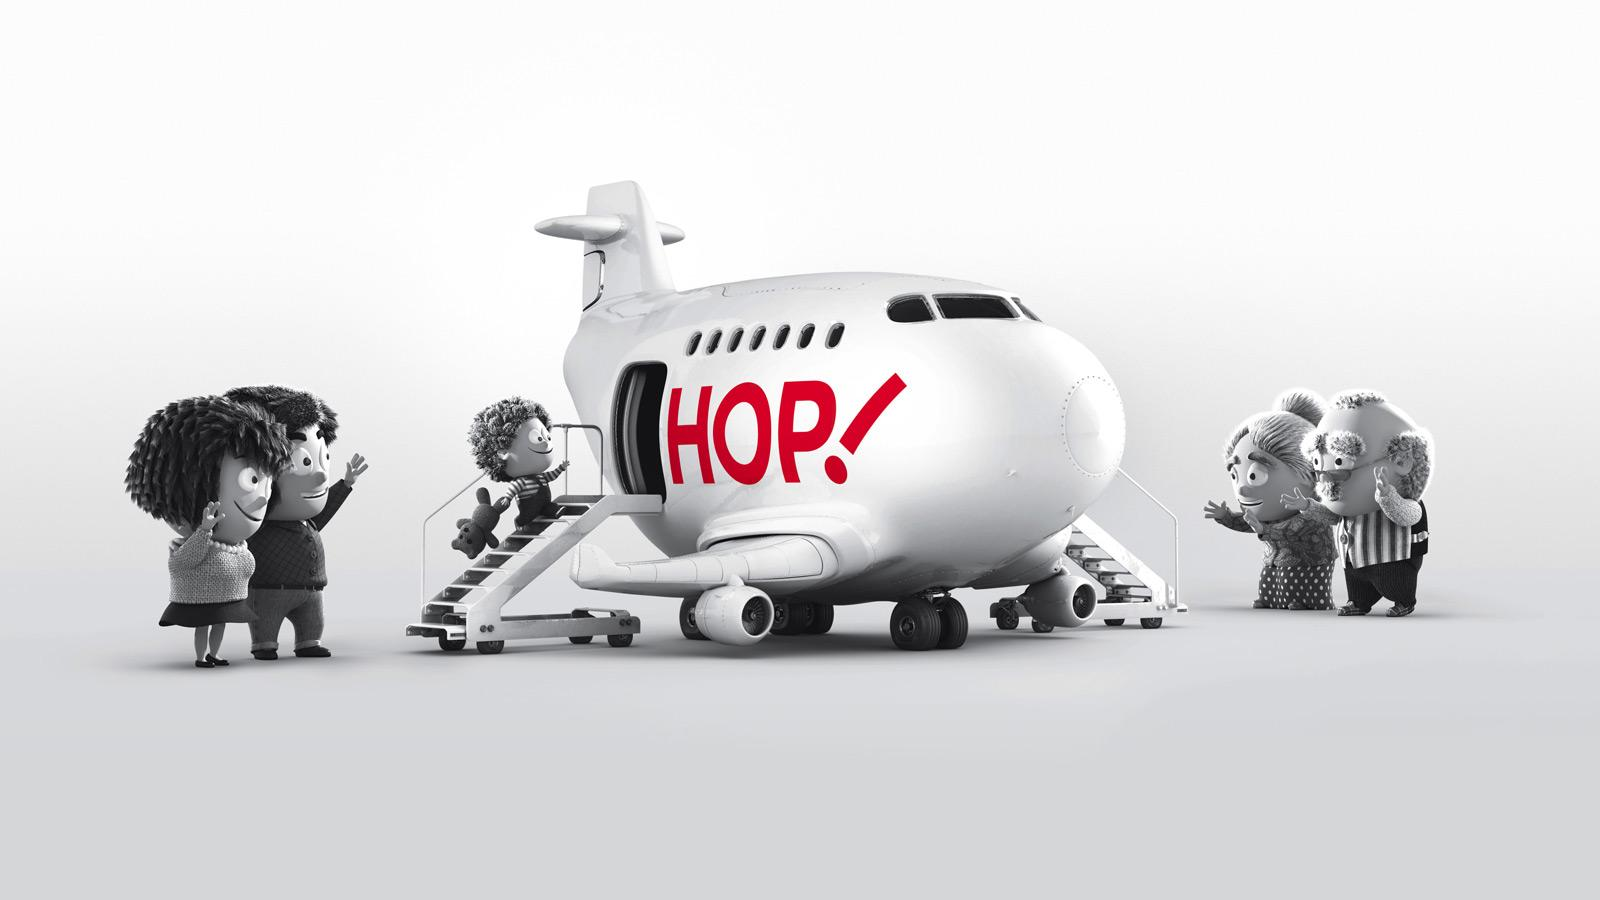 avion-hop-air-france